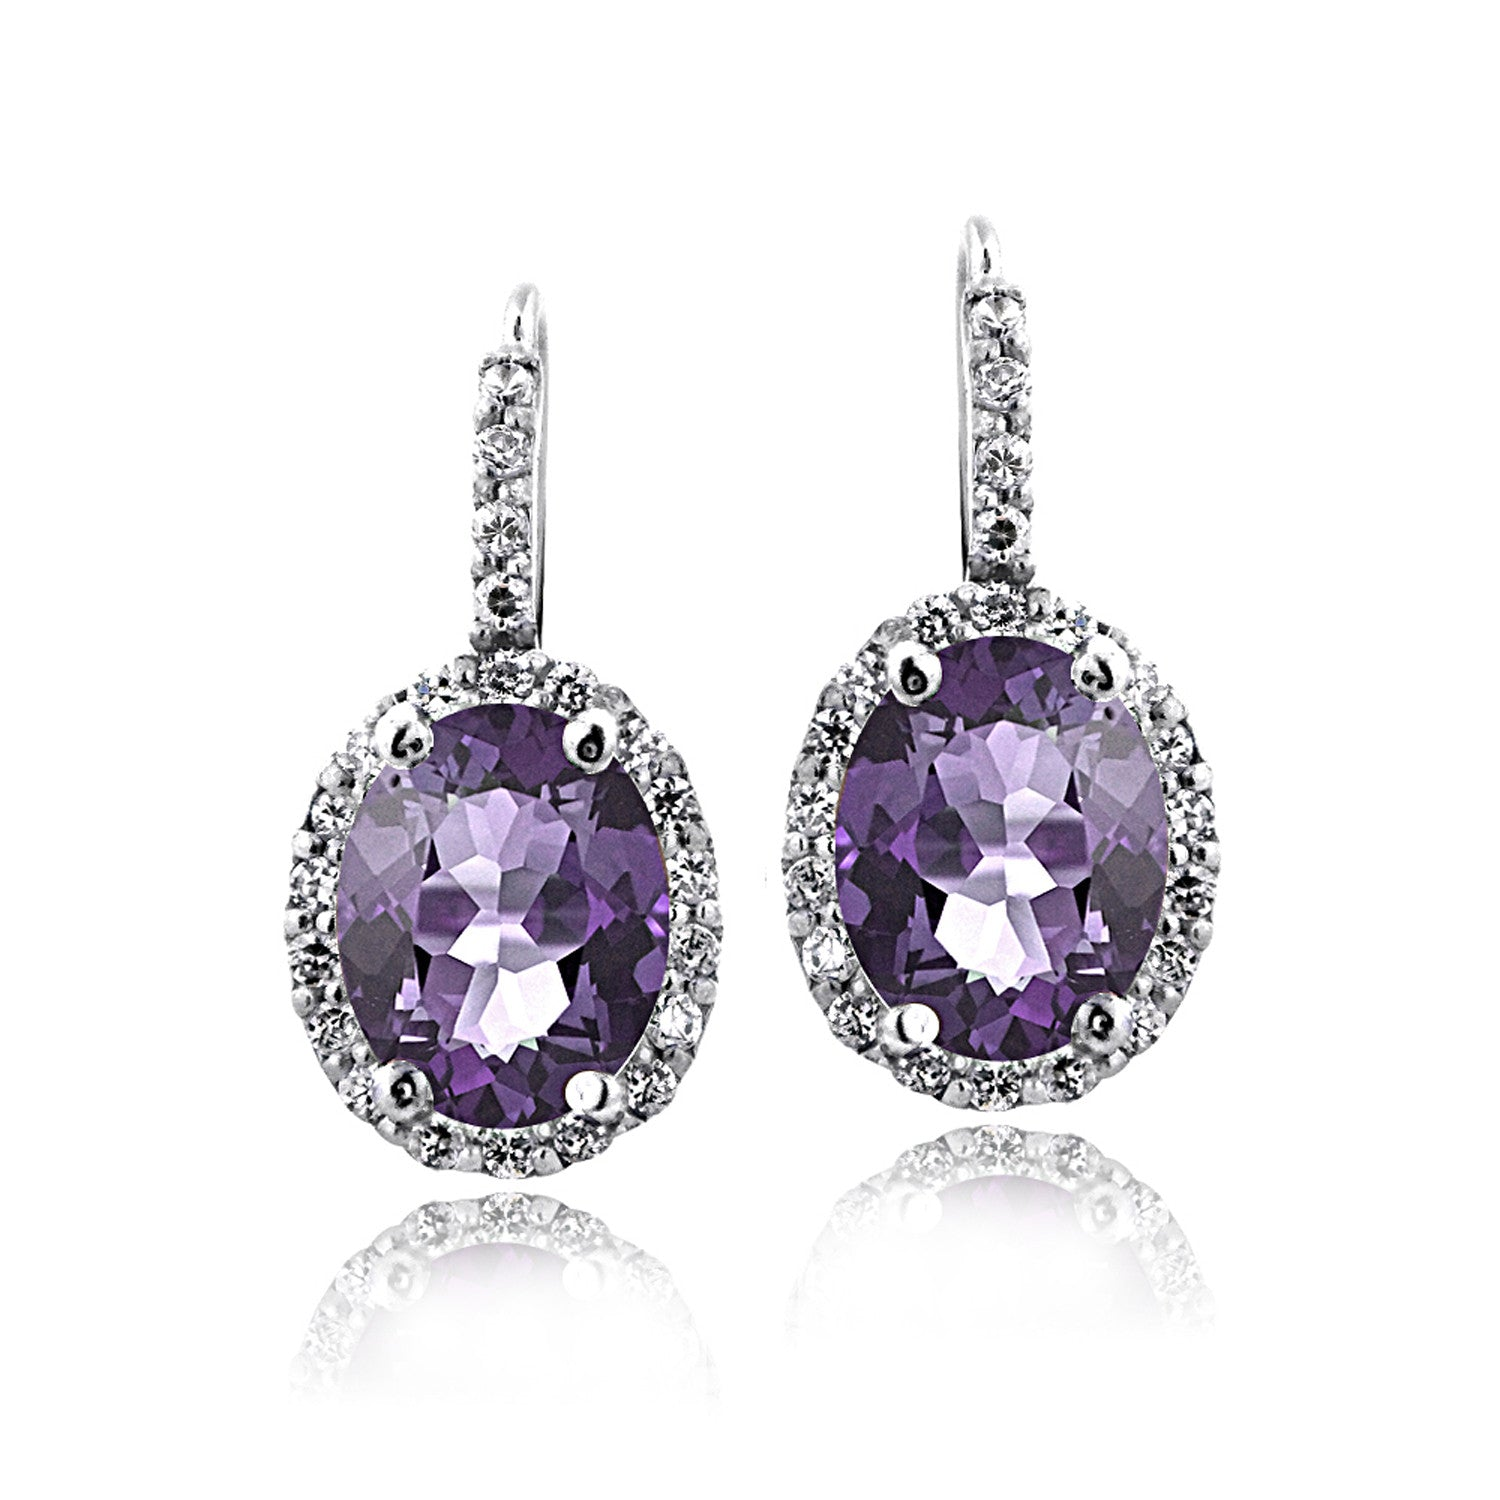 Oval Cut Gemstone Accent Sterling Silver Leverback Birthstone Earrings - February Amethyst